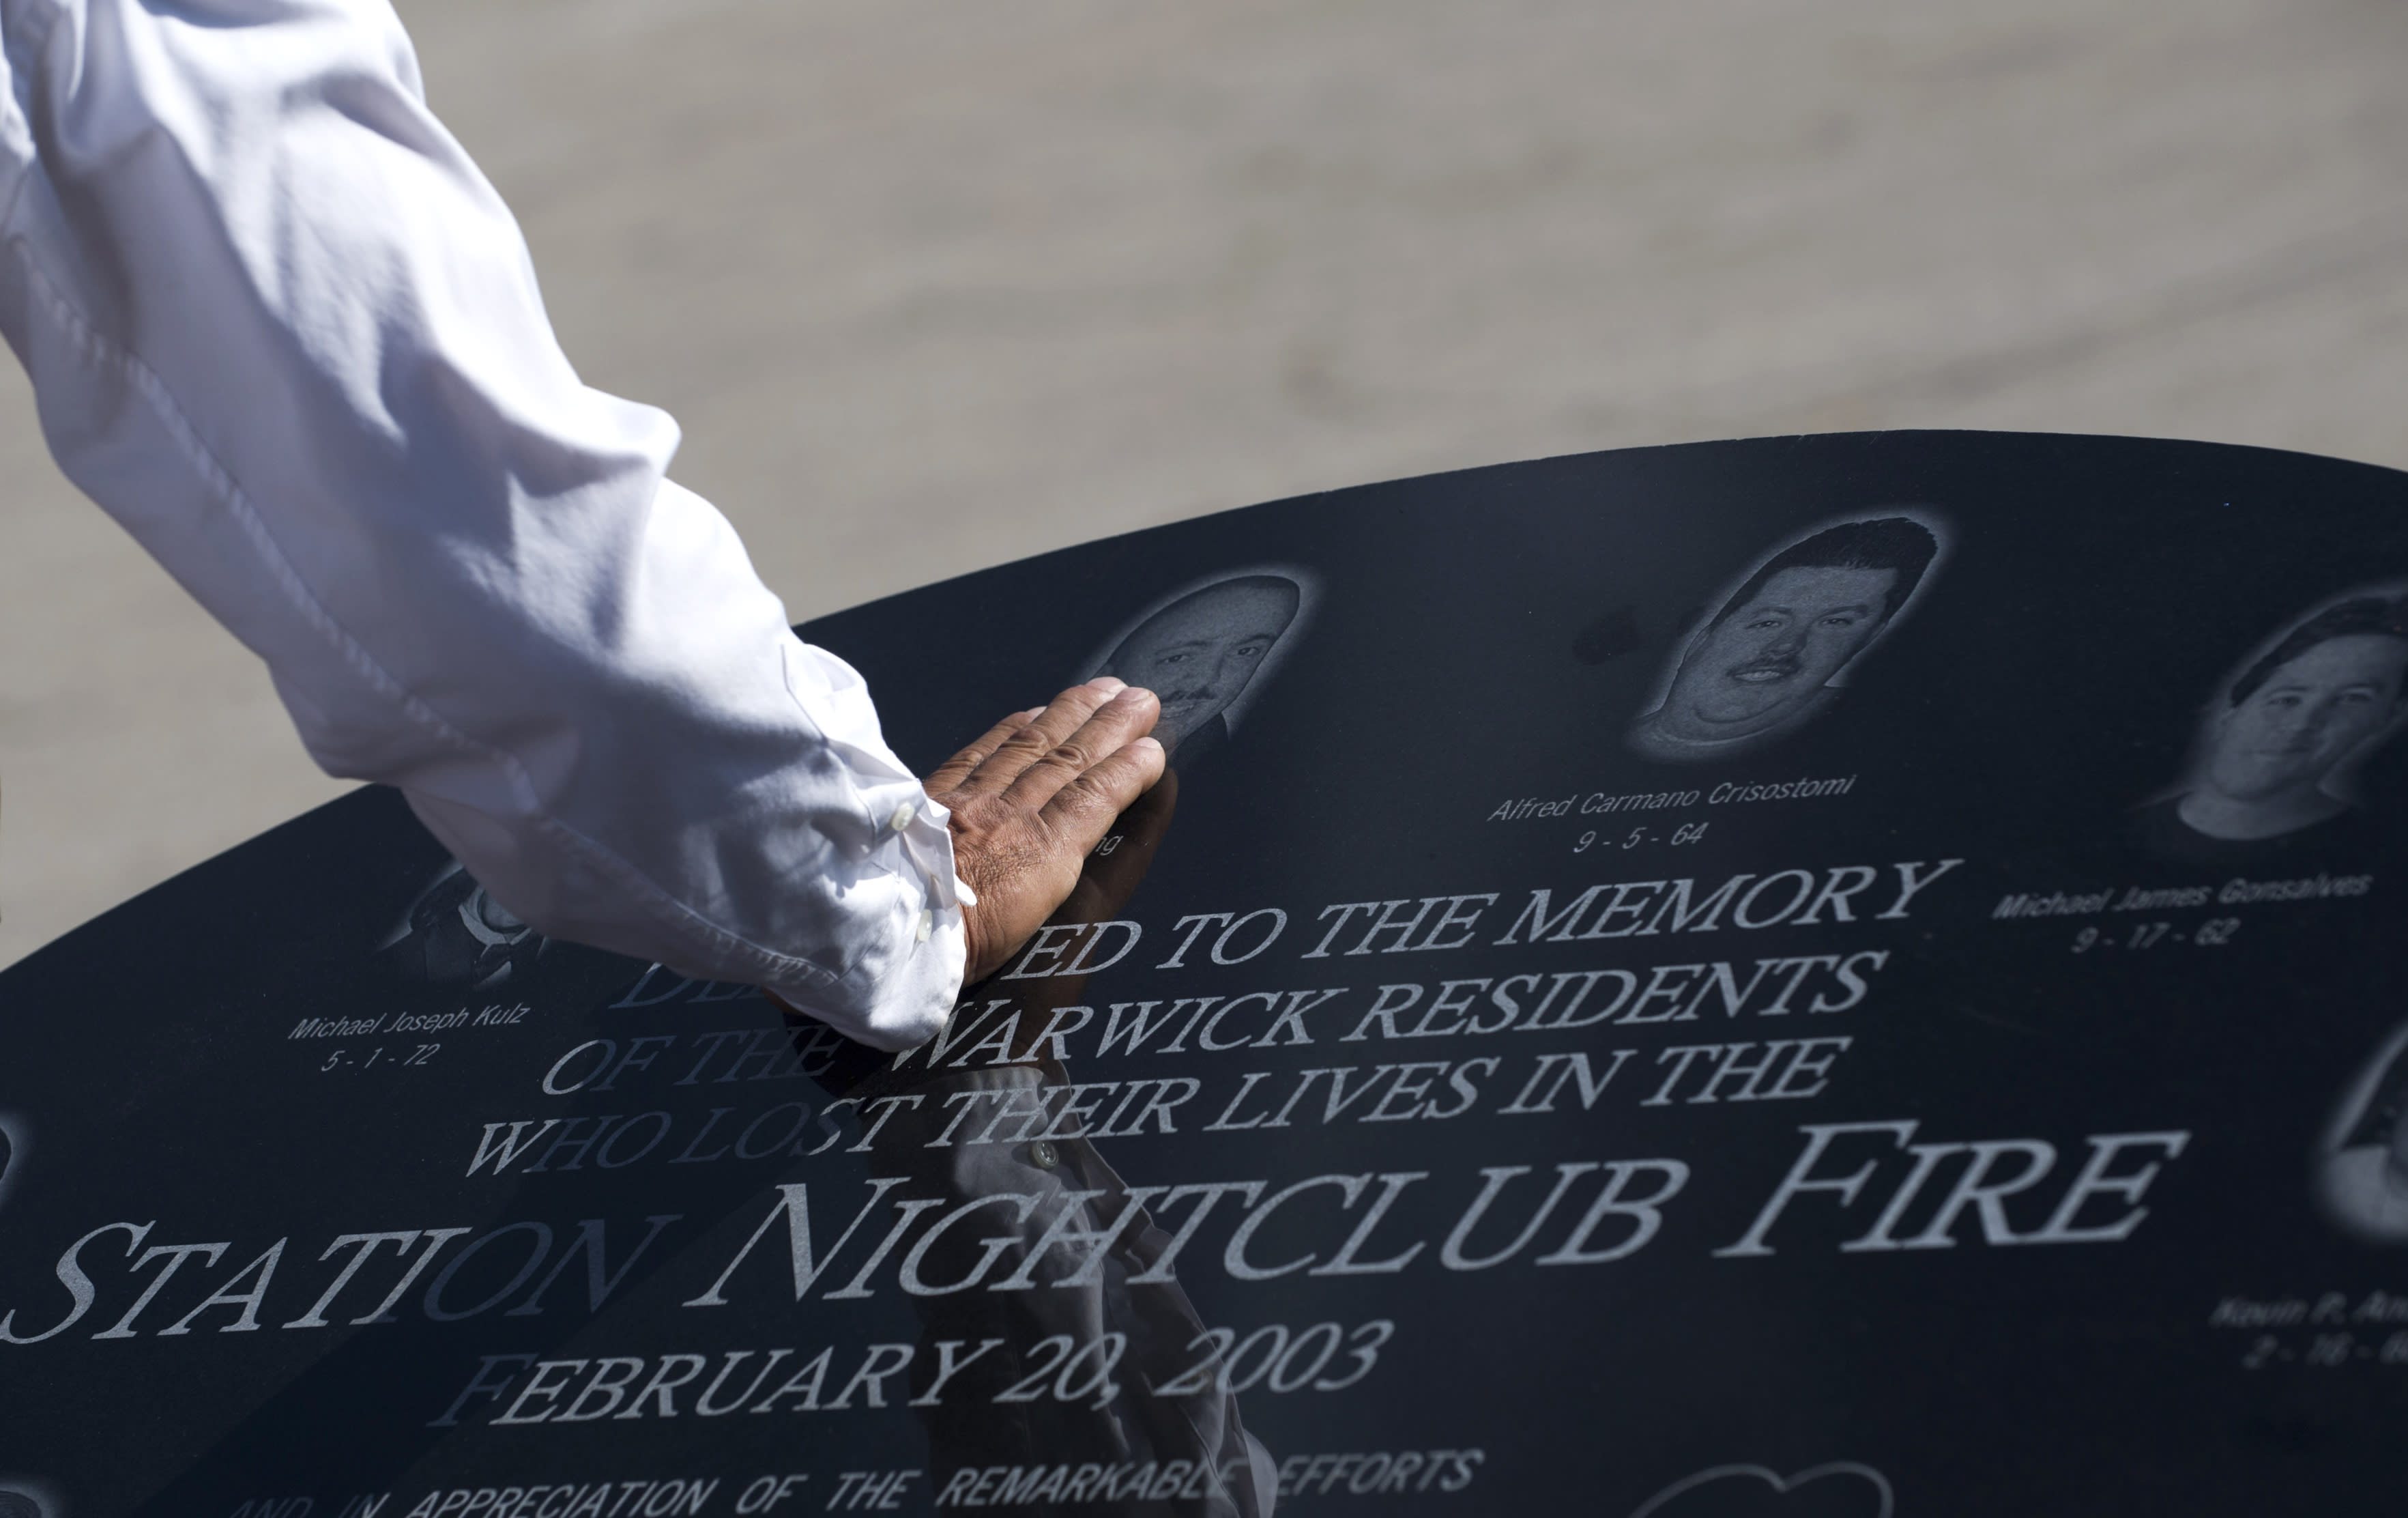 Jody King, of Warwick, R.I., touches the image of his brother Tracy King, following a ceremony, in Warwick, Saturday, Oct. 20, 2012, held to unveil a memorial stone that honors victims of the 2003 Station Nightclub Fire, in West Warwick, R.I. The Warwick memorial places a special focus on the 10 Warwick residents who died in the Feb. 20, 2003, fire at The Station nightclub, which happened when pyrotechnics for the rock band Great White ignited flammable foam that lined the walls of the club. Nine of the Warwick residents' names are inscribed in a granite slab that sits at the top of a 28-foot-diameter brick circular plaza. Around the exterior of the circle are 100 8-by-8-inch bricks inscribed with the name of every person who died. (AP Photo/Gretchen Ertl)